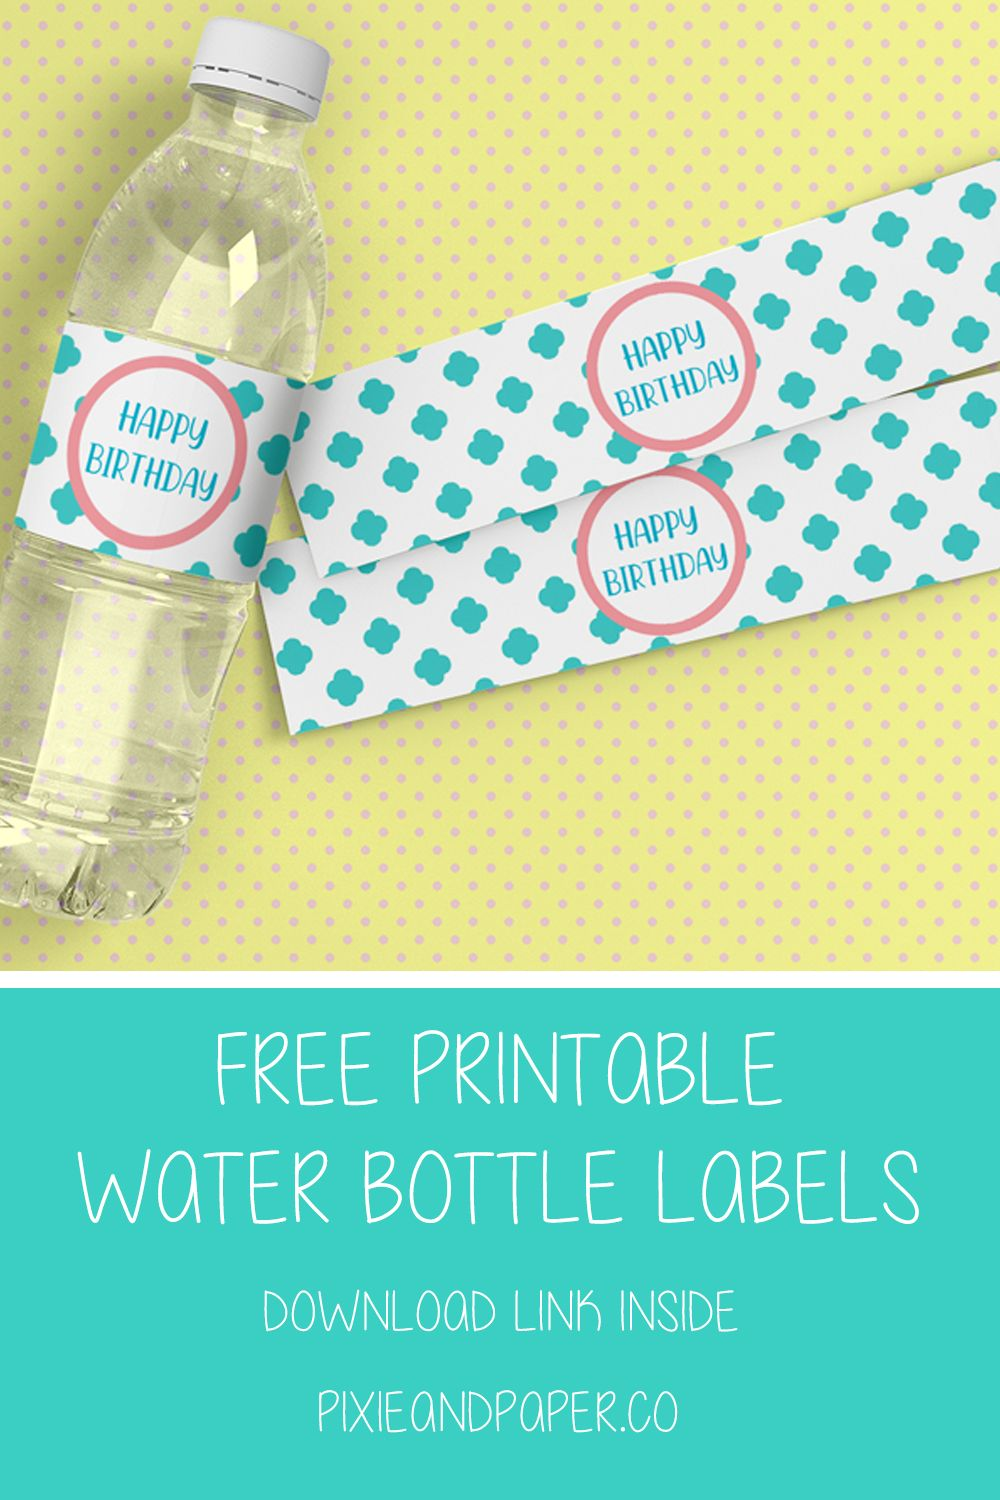 image regarding Free Printable Birthday Labels titled Absolutely free Printable Birthday Drinking water Bottle Labels as a result of Pixie Paper